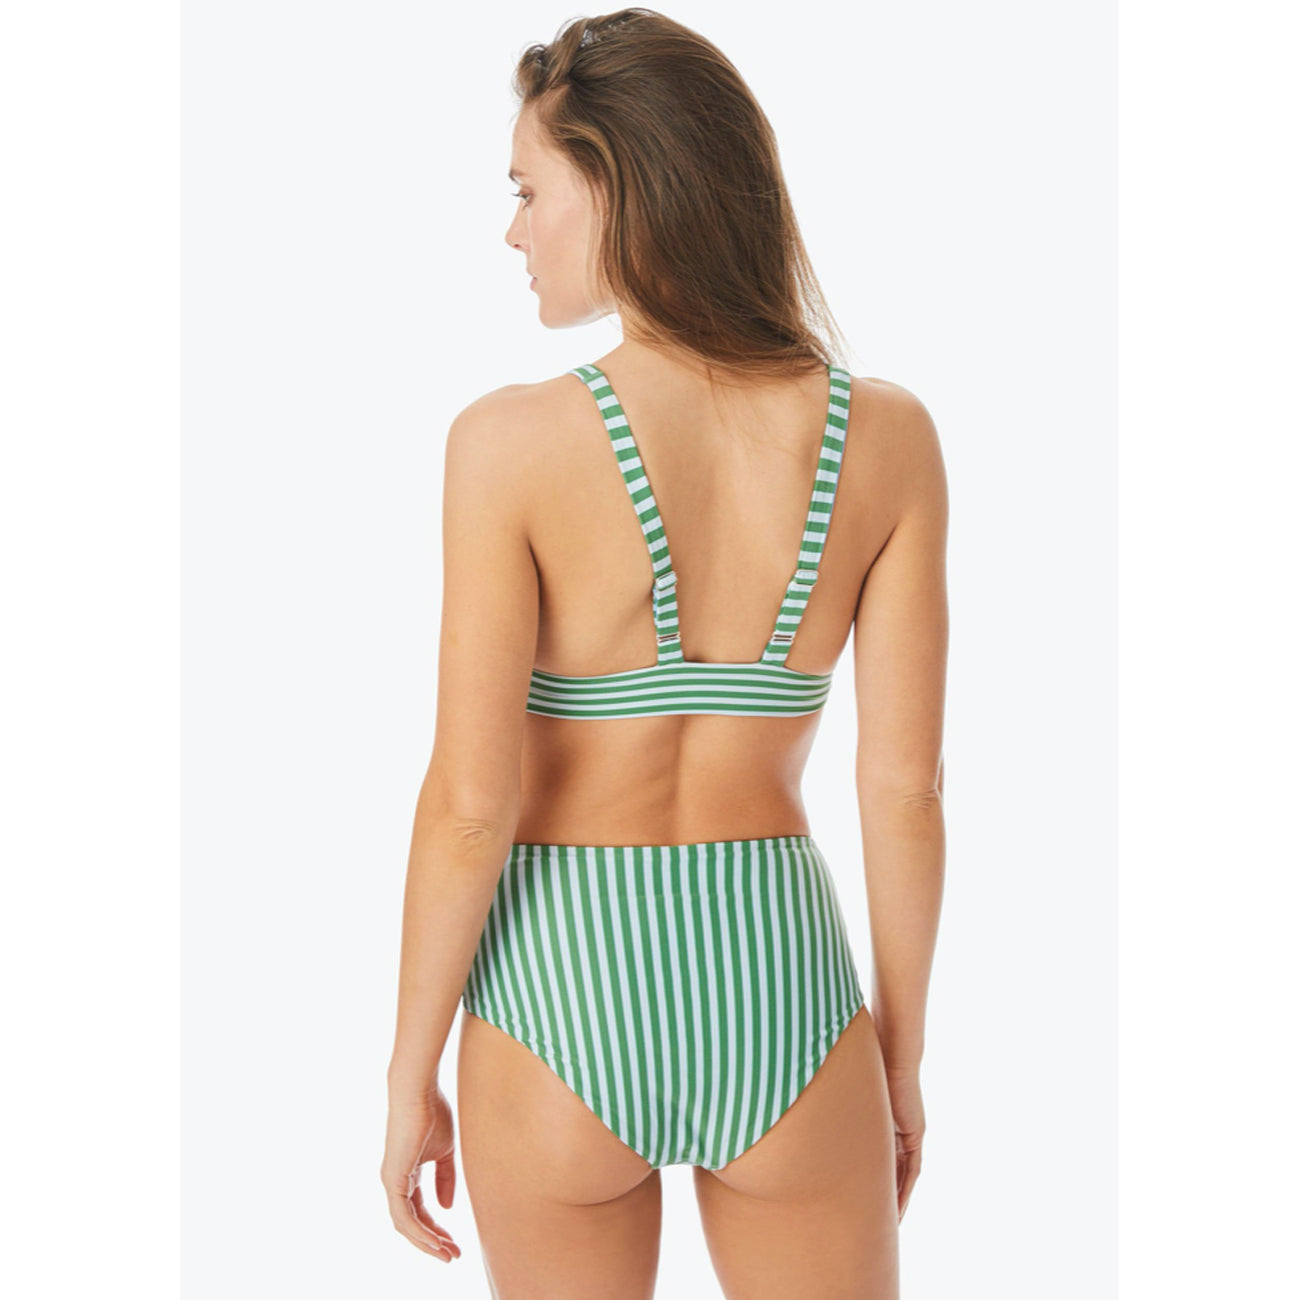 high waisted bikini in sundial